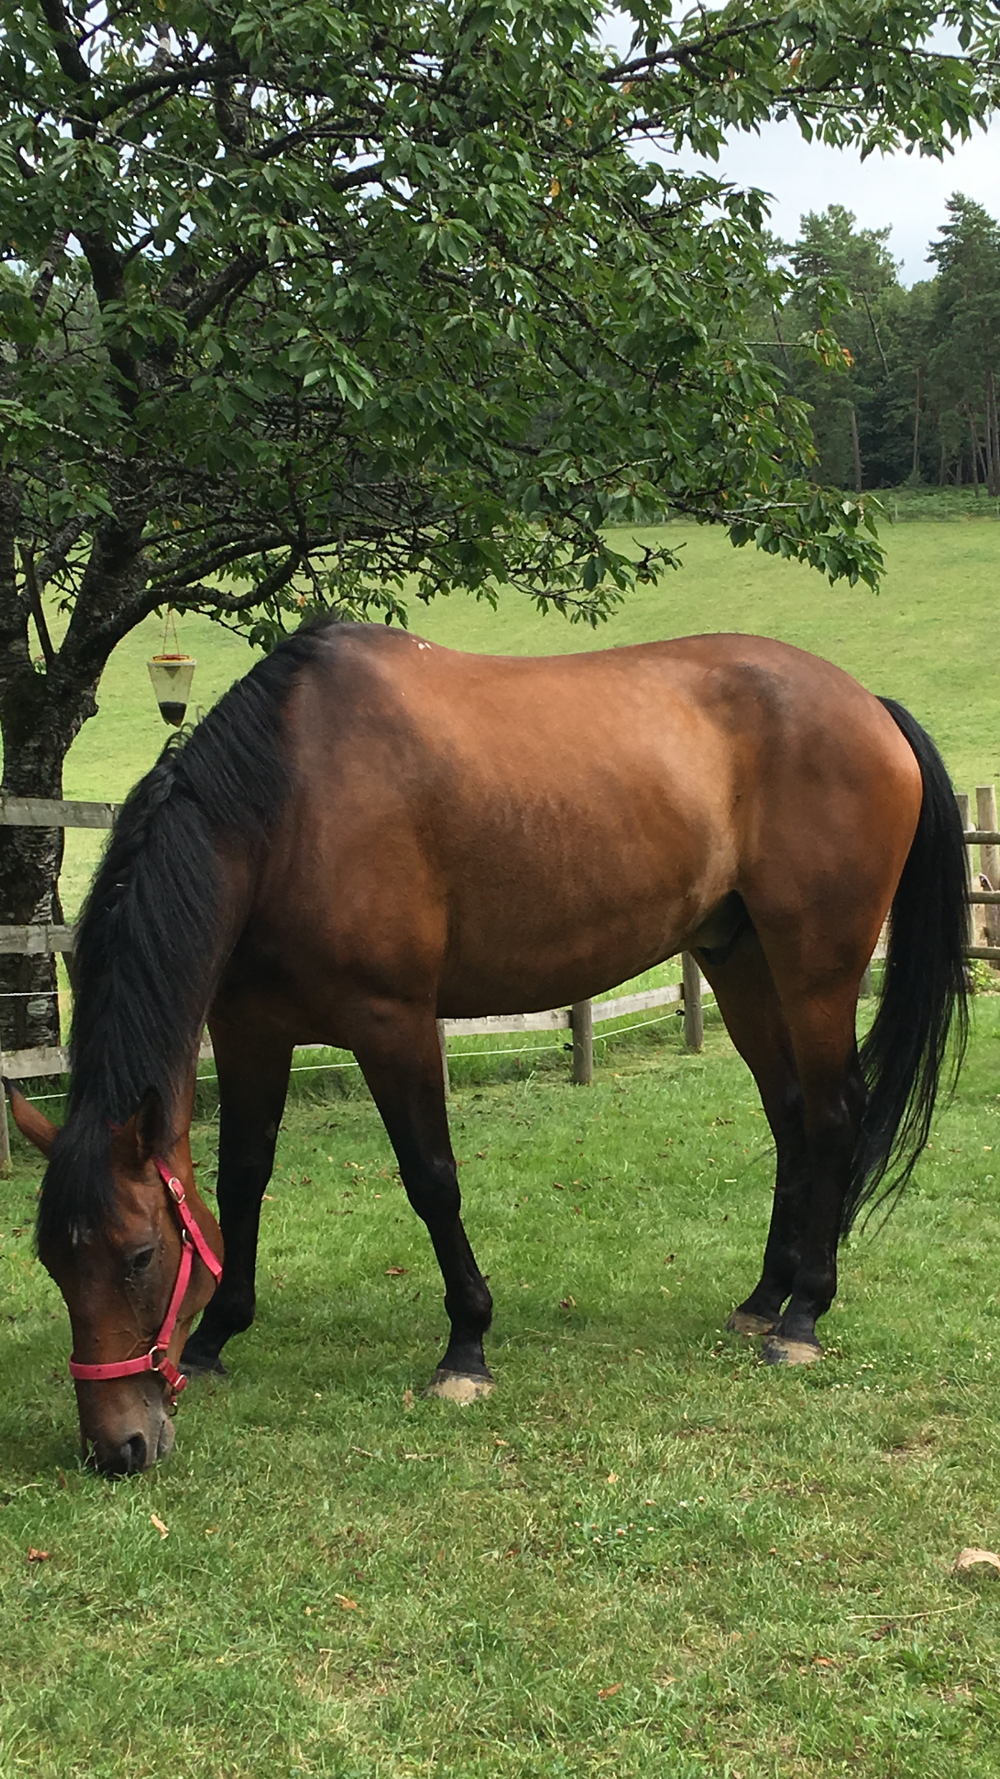 RANGER OUR LATEST HORSE FROM THE METROPOLITAN POLICE FORCE, LONDON WHO ARRIVED LAST AUGUST - HE SETTLED IN ON HIS FIRST DAY AS THOUGH HE HAD ALWAYS LIVED HERE. IF YOU WOULD LIKE TO DONATE TO HIS UPKEEP AND ALSO HELP ALL THE OTHER POLICE HORSES WE HAVE IN OUR CARE PLEASE CLICK HERETO BE TAKEN TO OUR DONATIONS PAGE